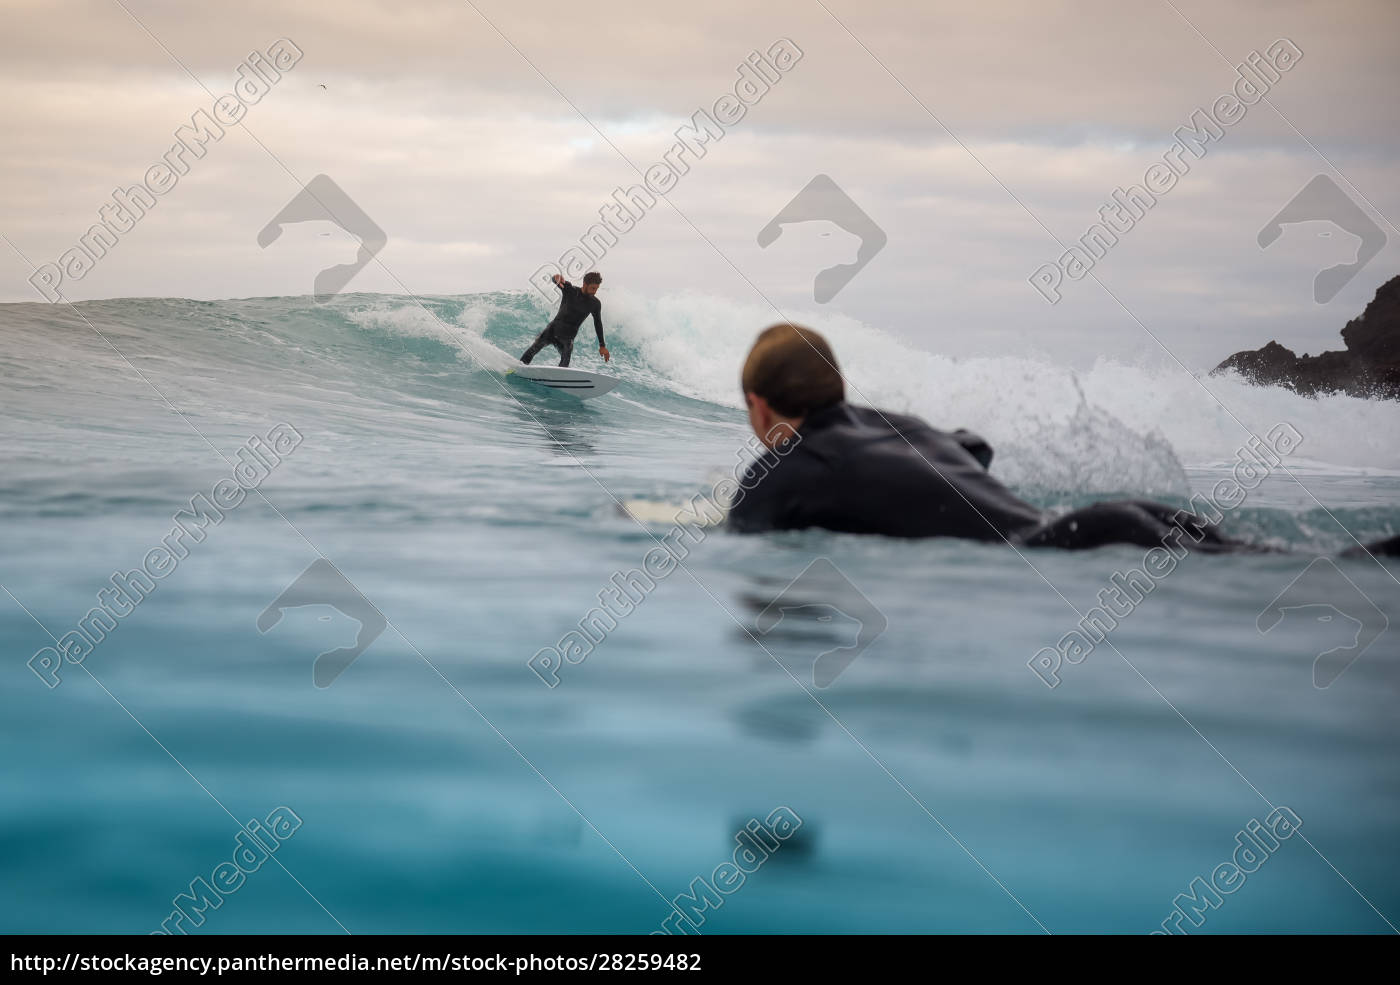 surfer, riding, waves, on, the, island - 28259482